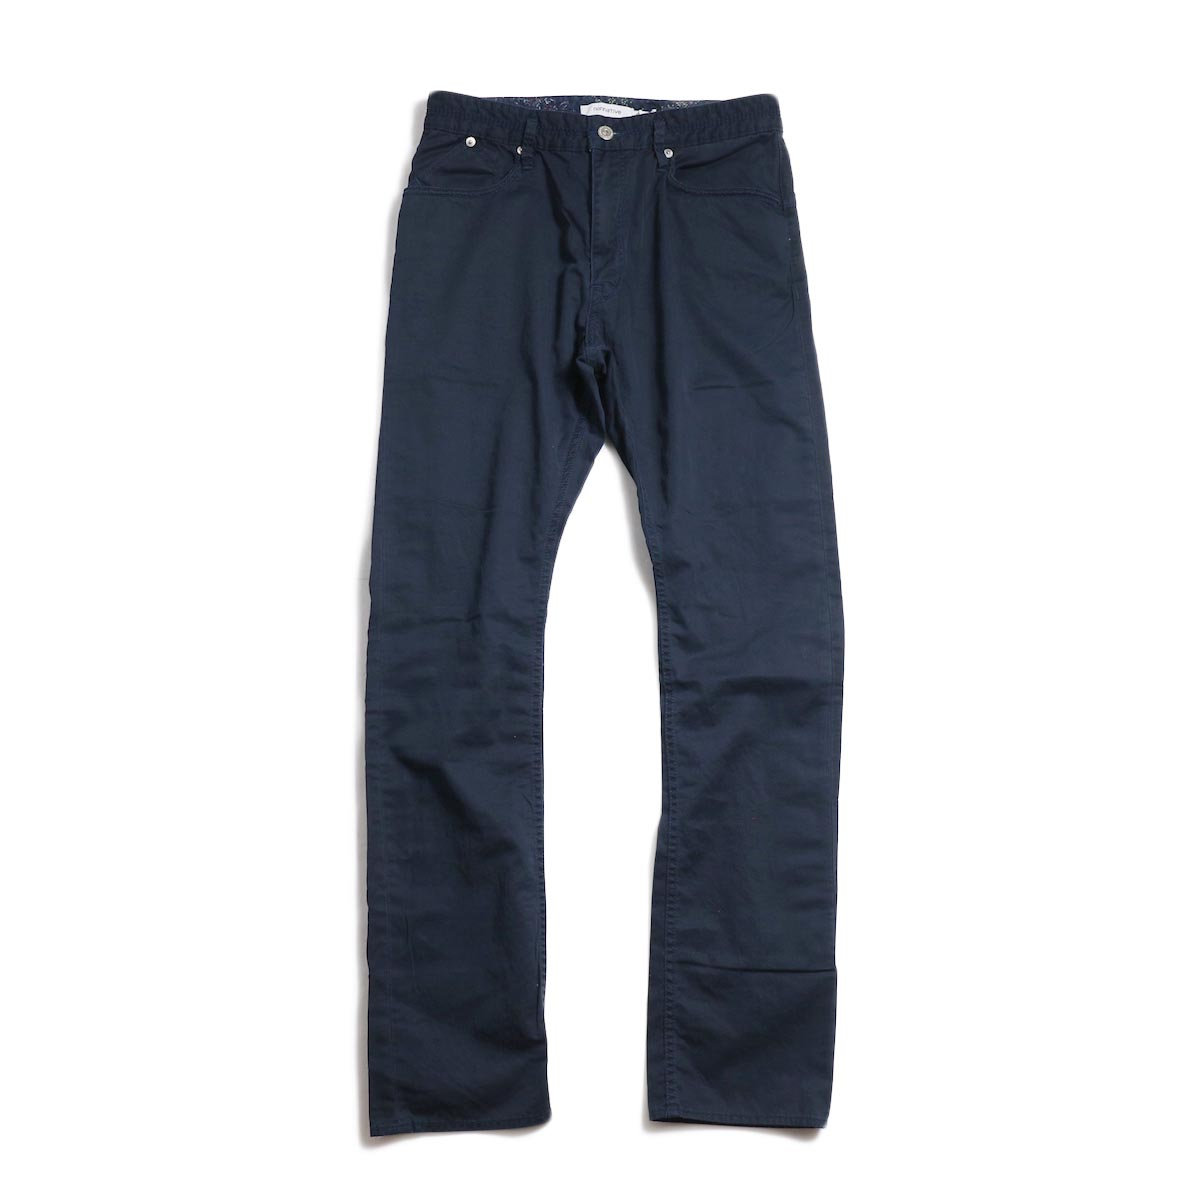 nonnative / DWELLER 5P JEANS USUAL FIT C/L TWILL -Navy